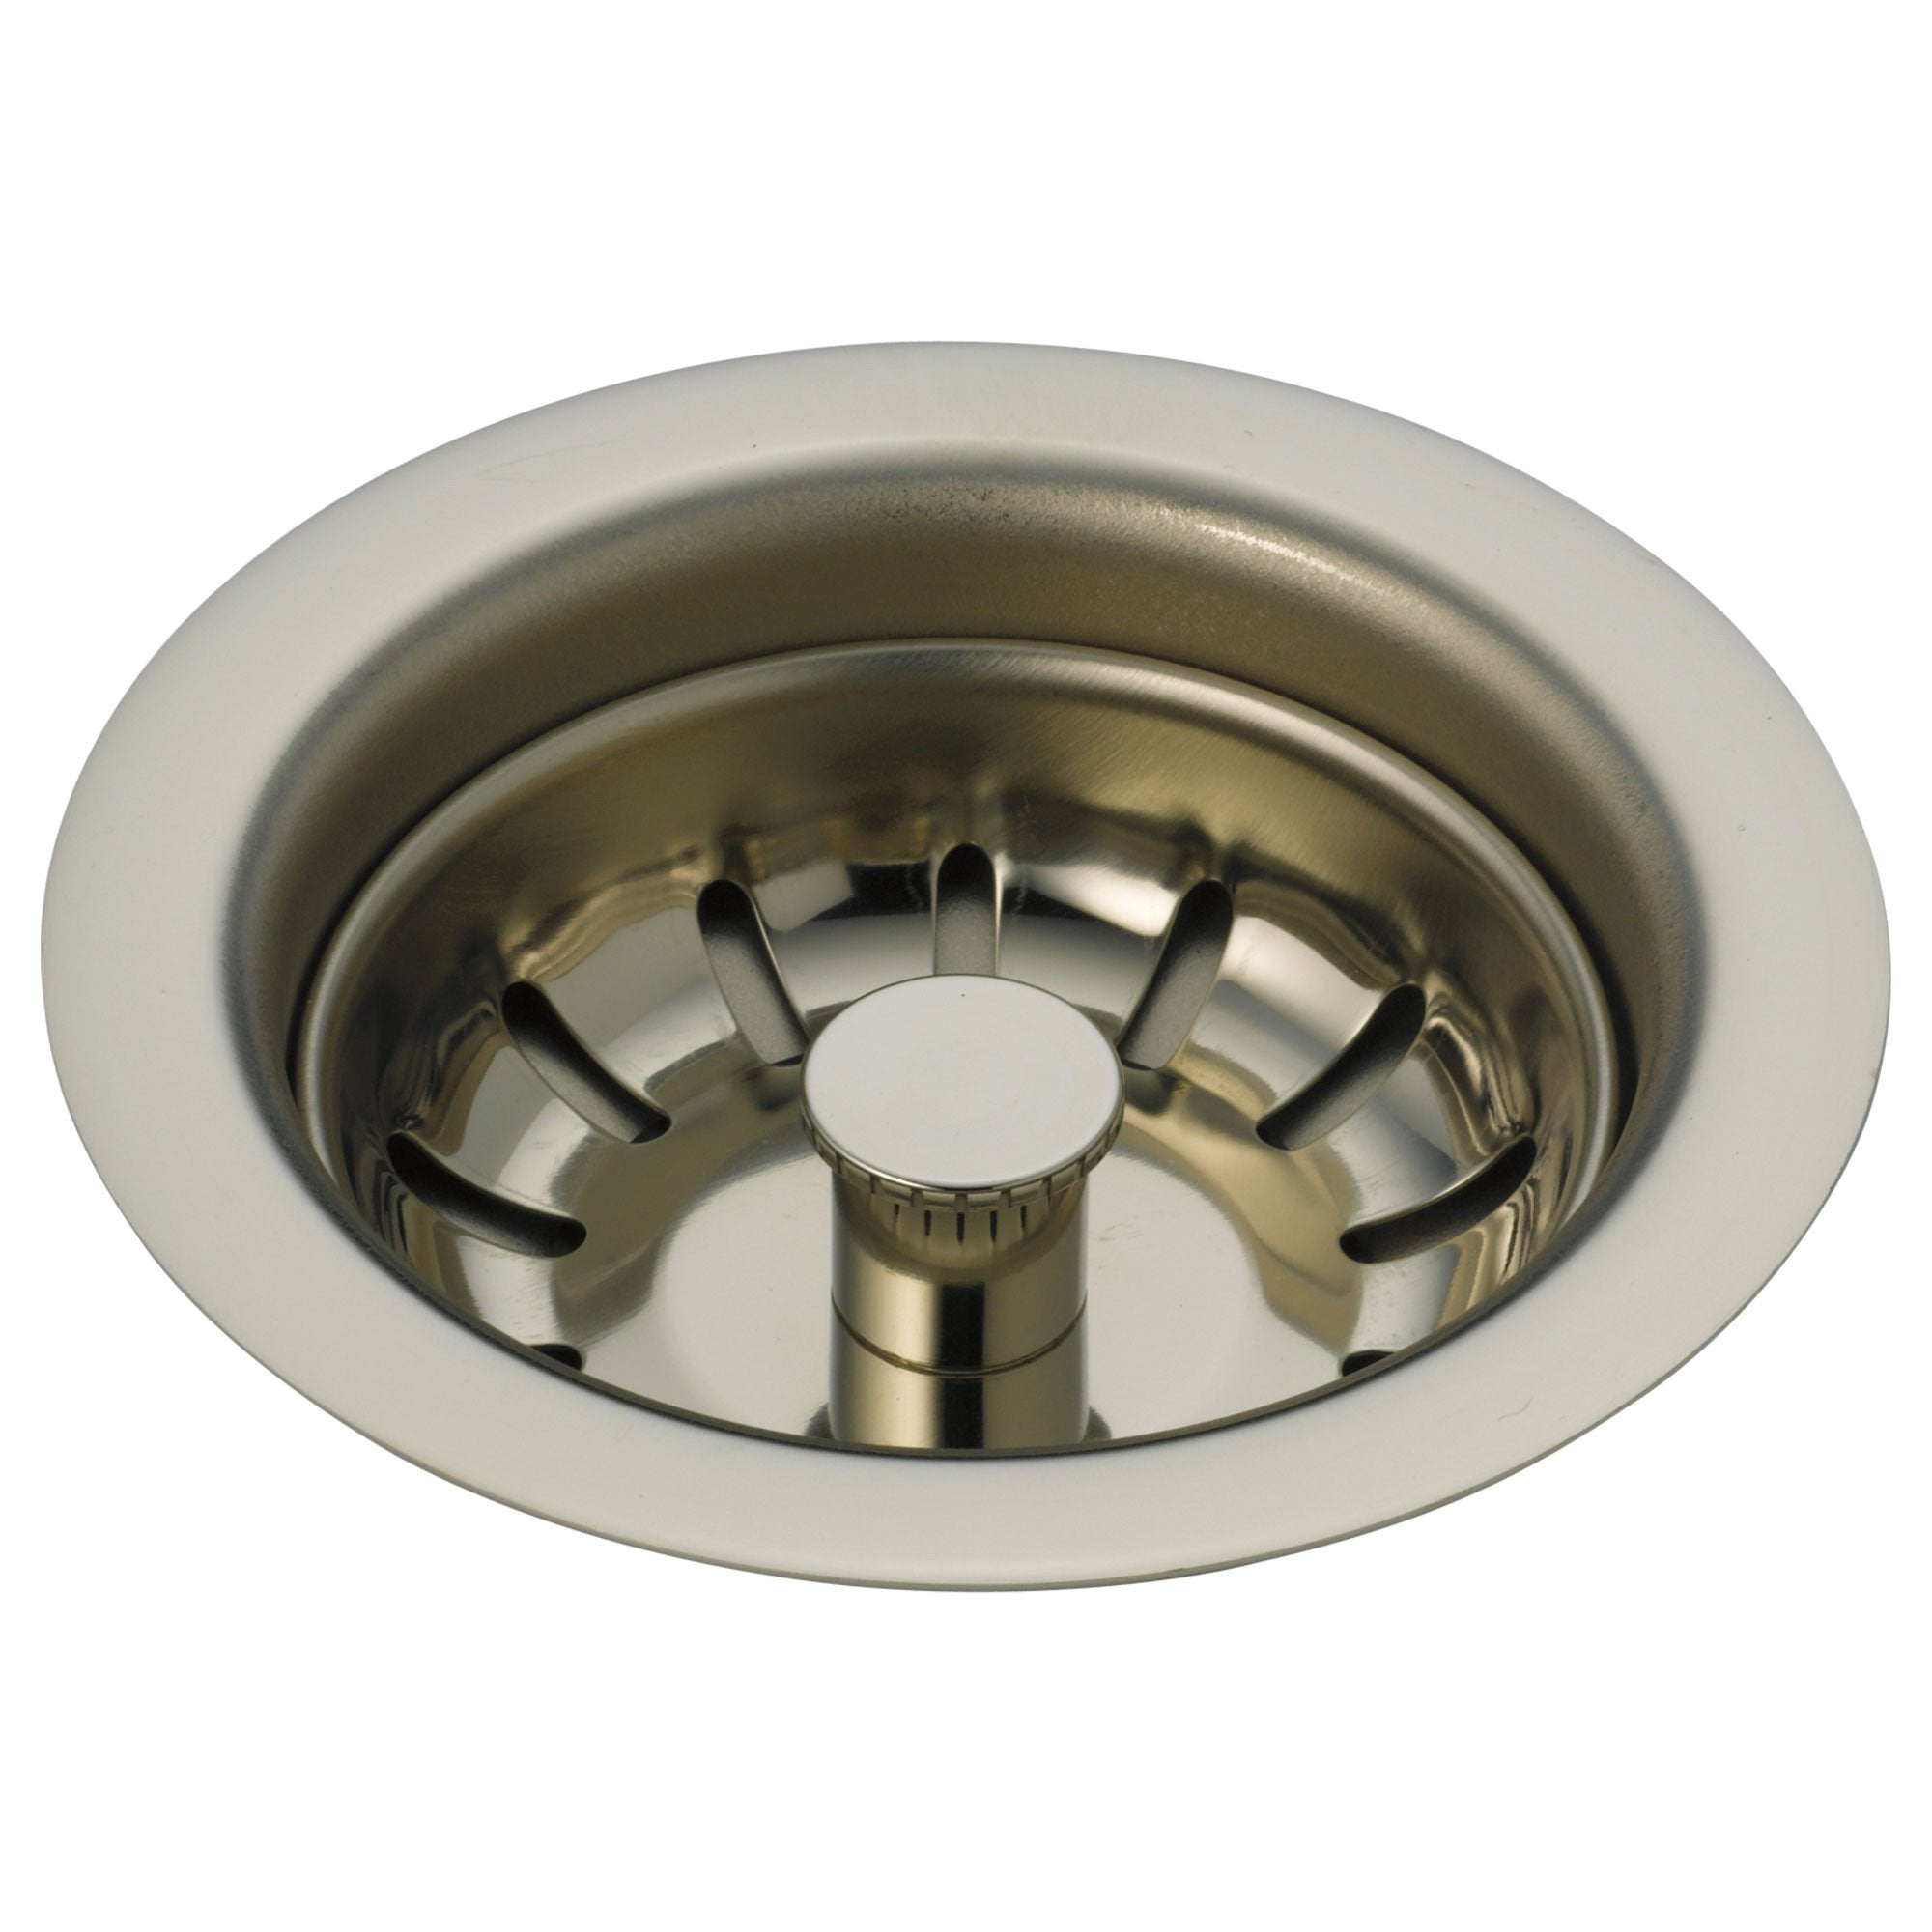 Delta Polished Nickel Finish Kitchen Sink Flange and Basket Strainer D72010PN